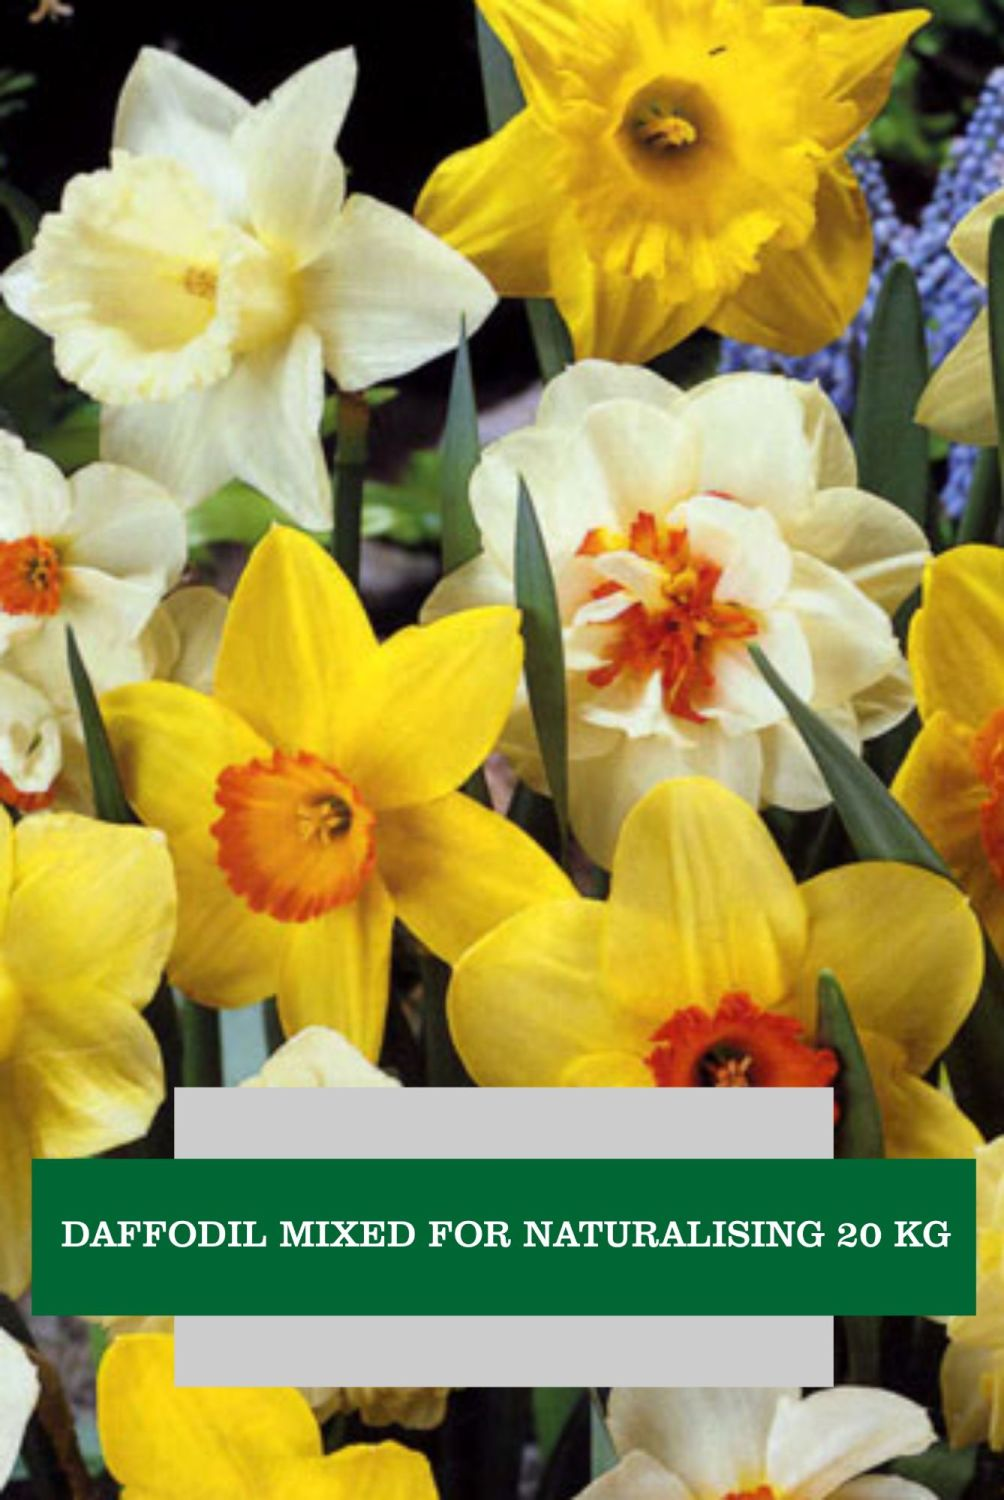 DAFFODILS MIX FOR NATURALISING 20KG